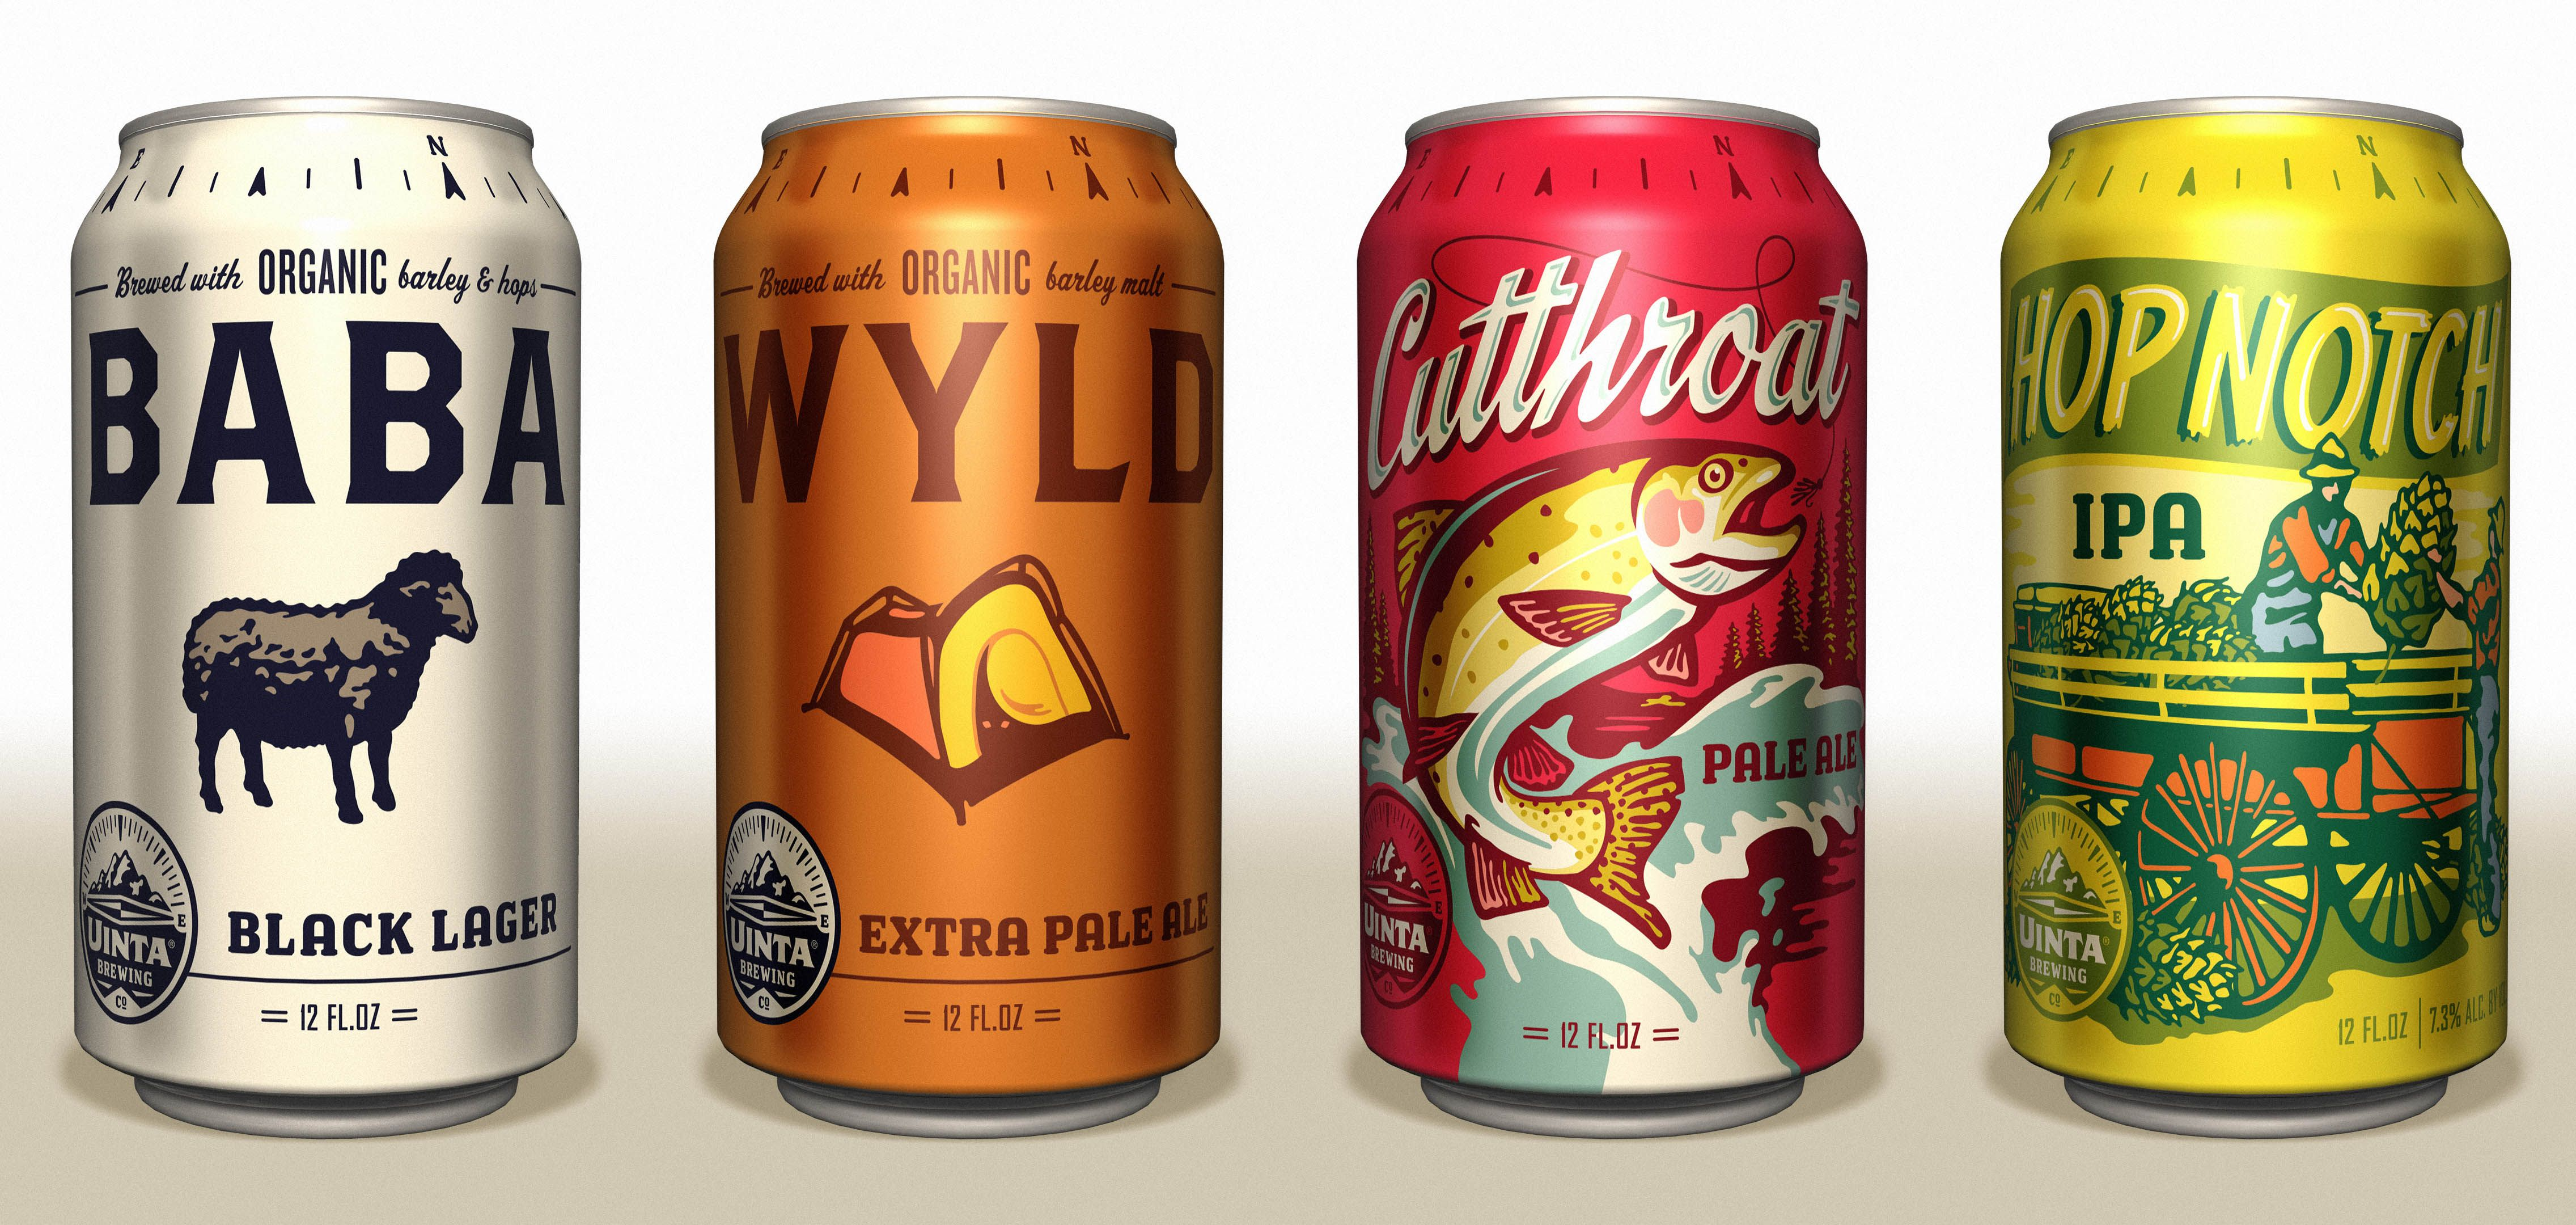 20 Cool Beer Cans A Beer Can Packaging Collection Art Design